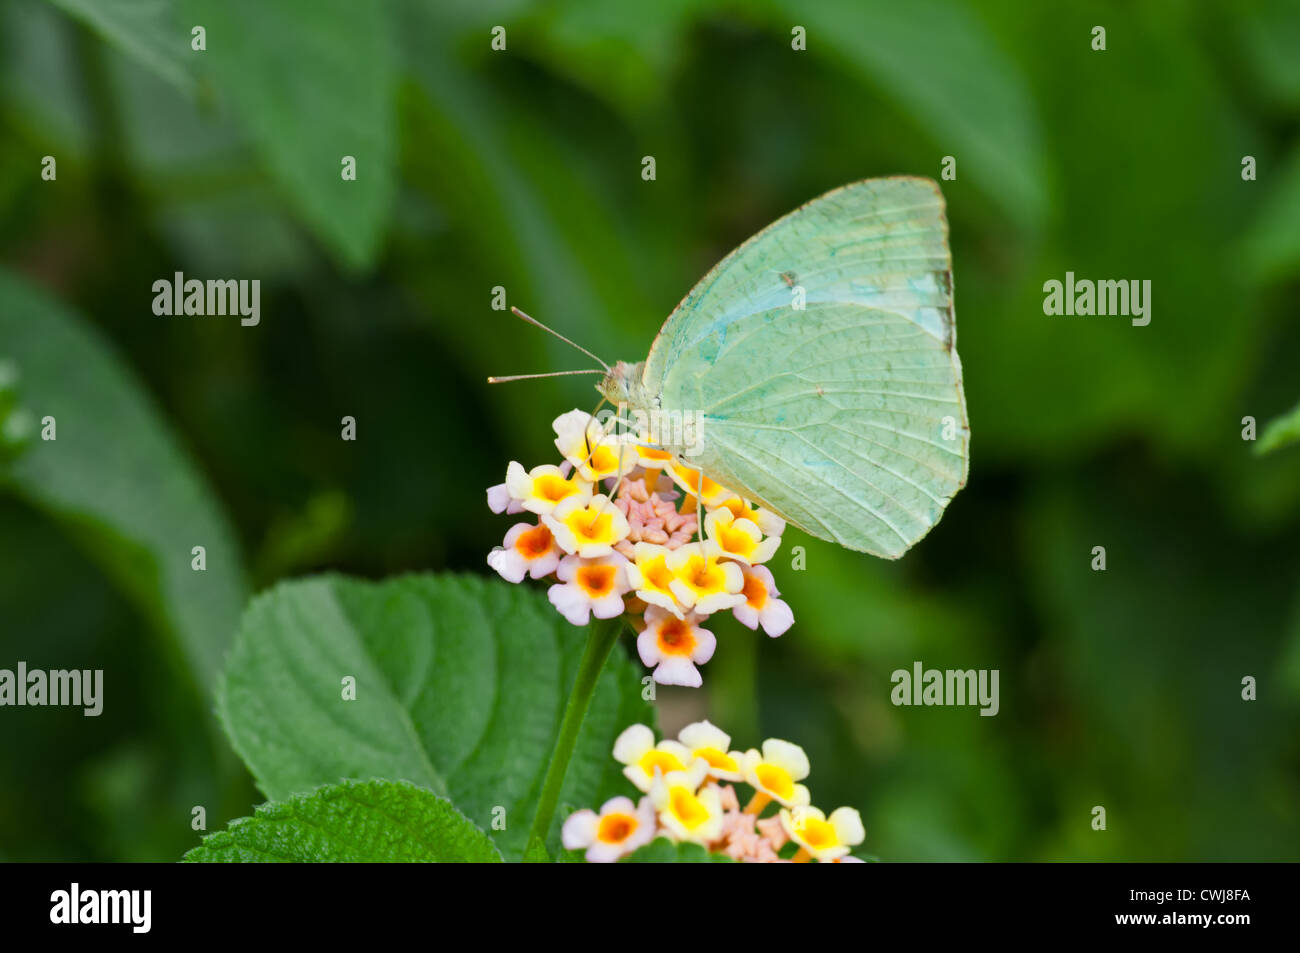 Butterfly, Common Emigrant, Catopsilia piomona, sucking honey from flower, pollinate, close up, copy space - Stock Image